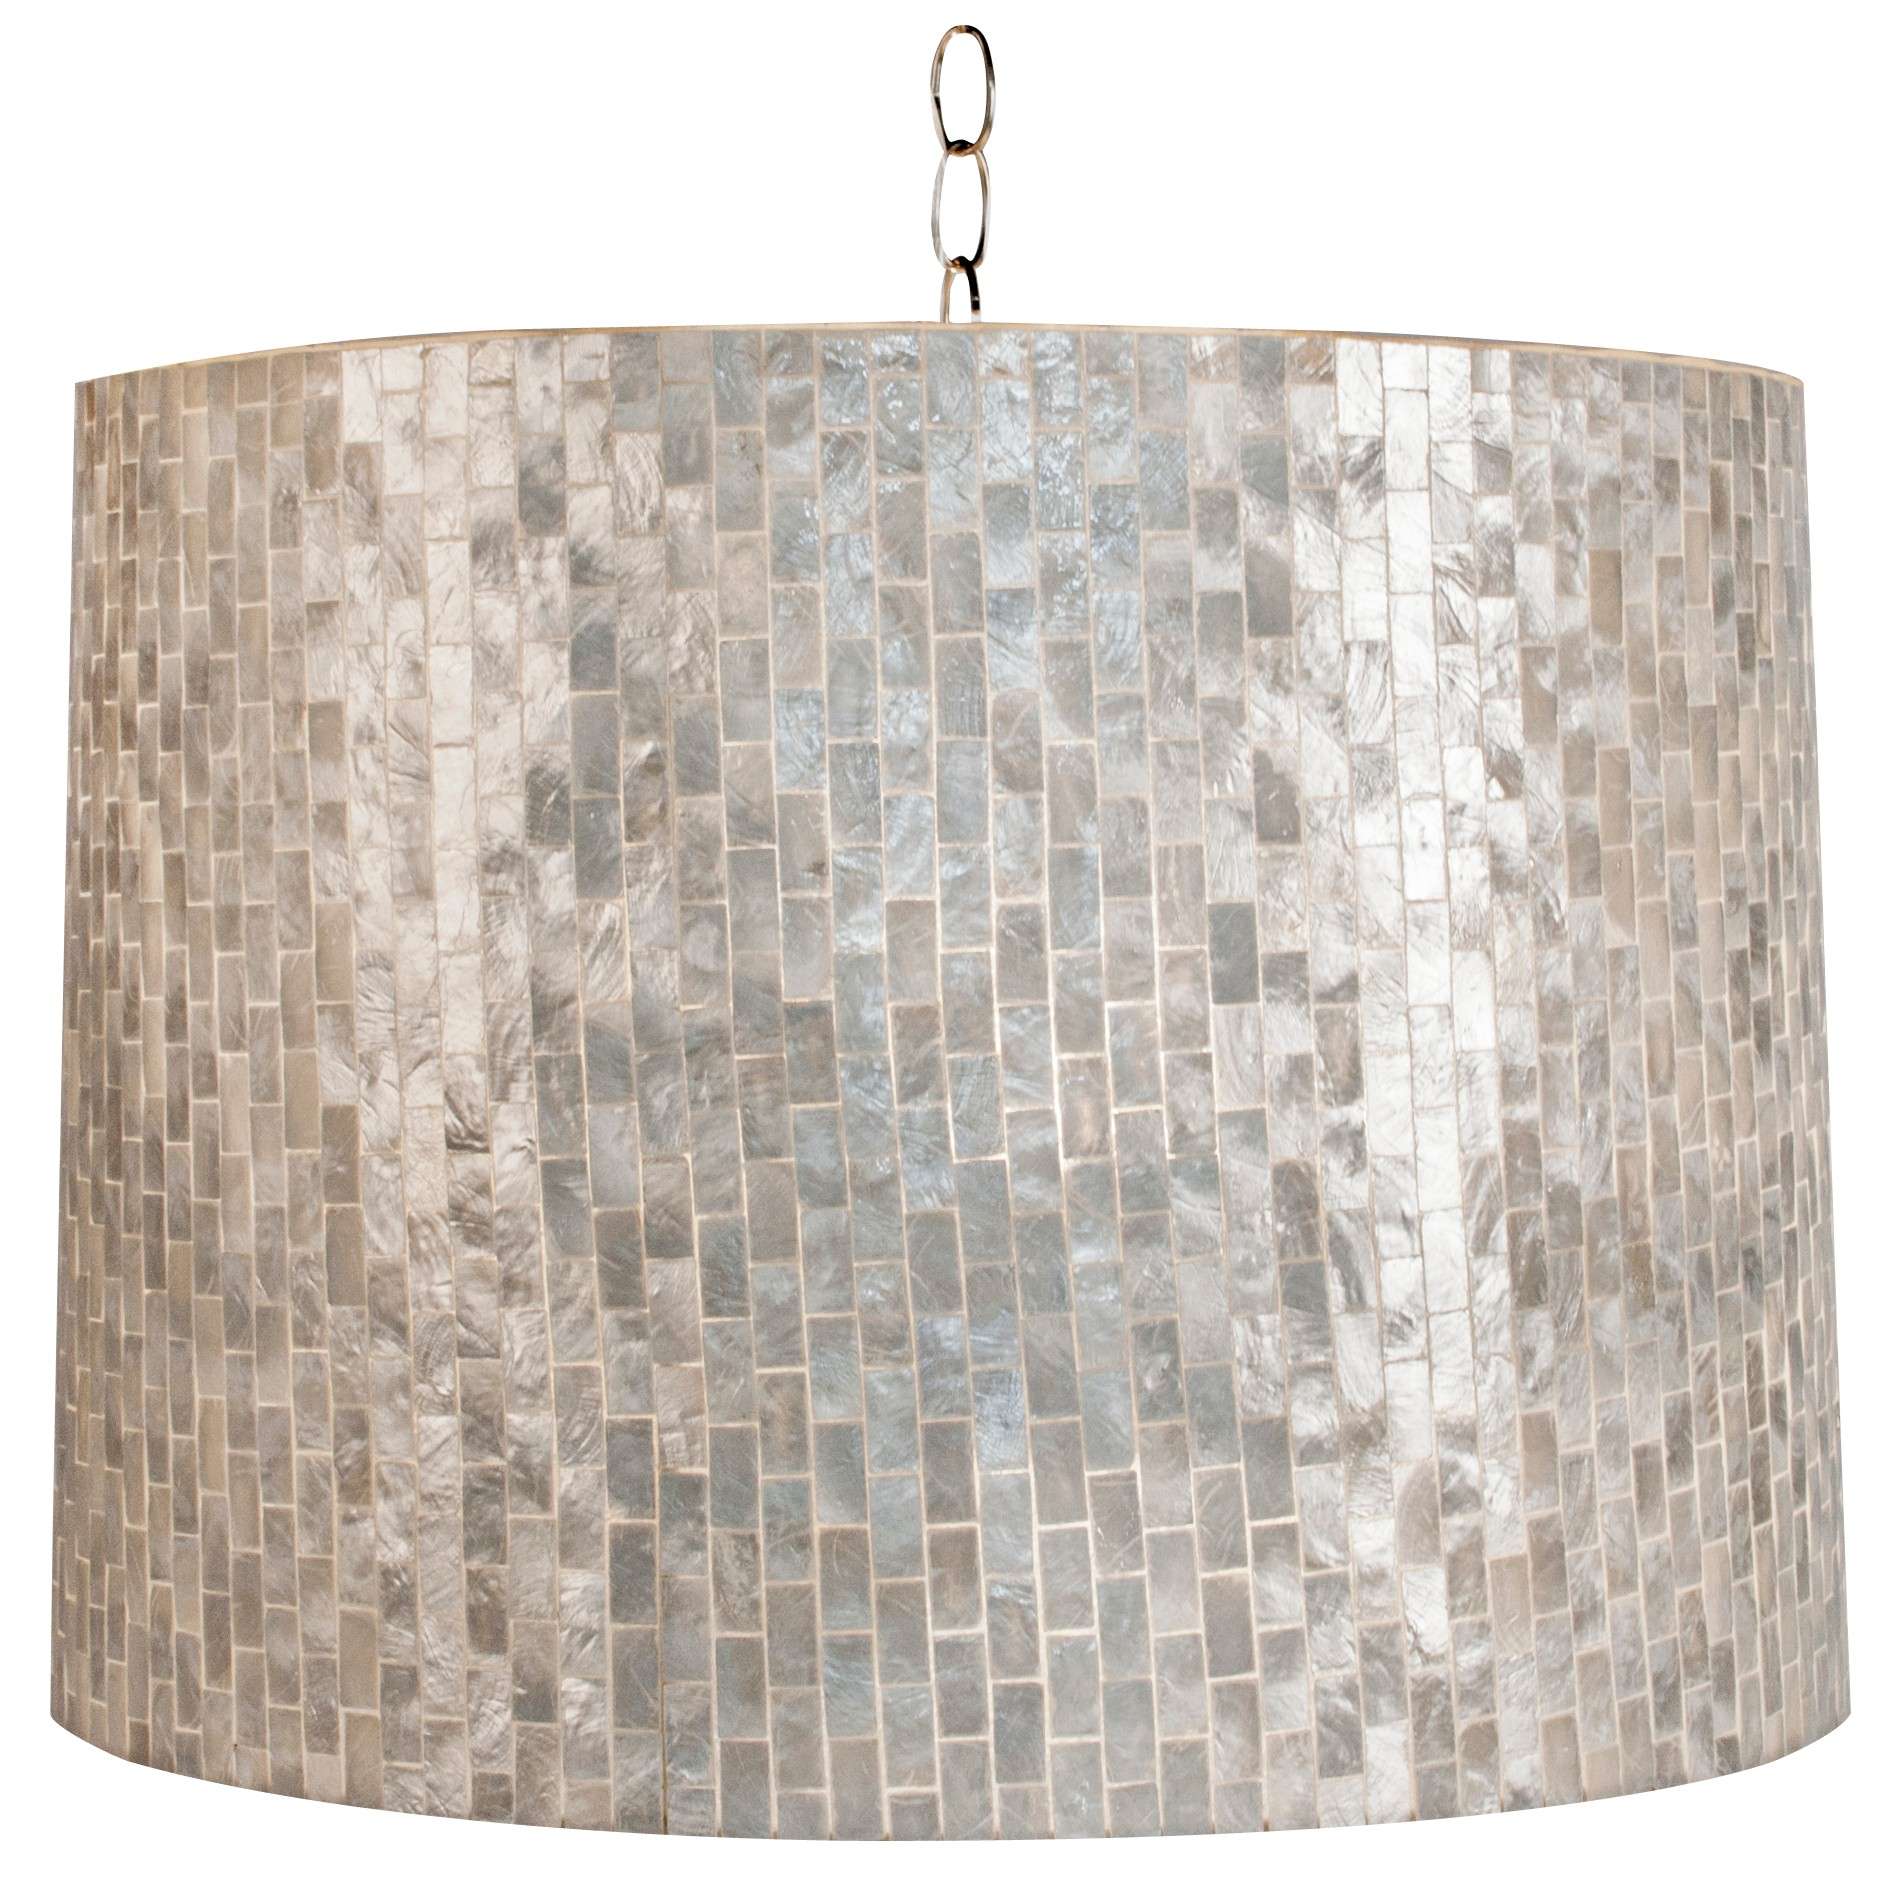 Mesmerizing capiz chandelier for home lighting design with rectangular capiz chandelier